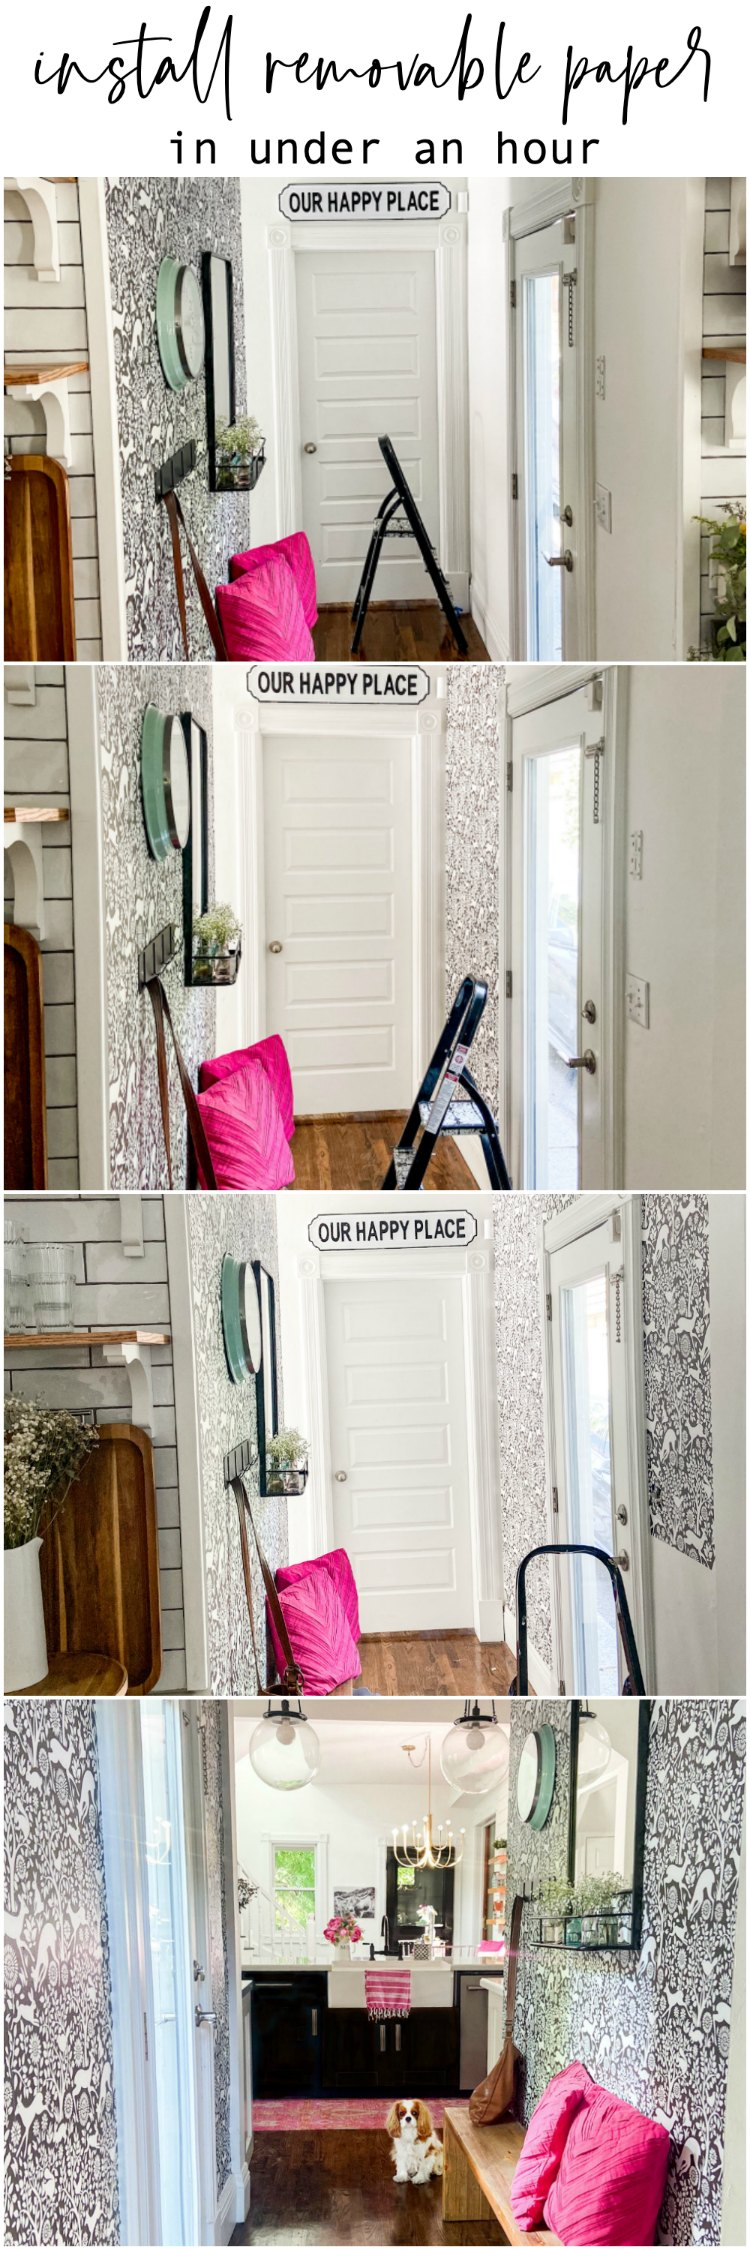 How to install removable wallpaper in under an hour